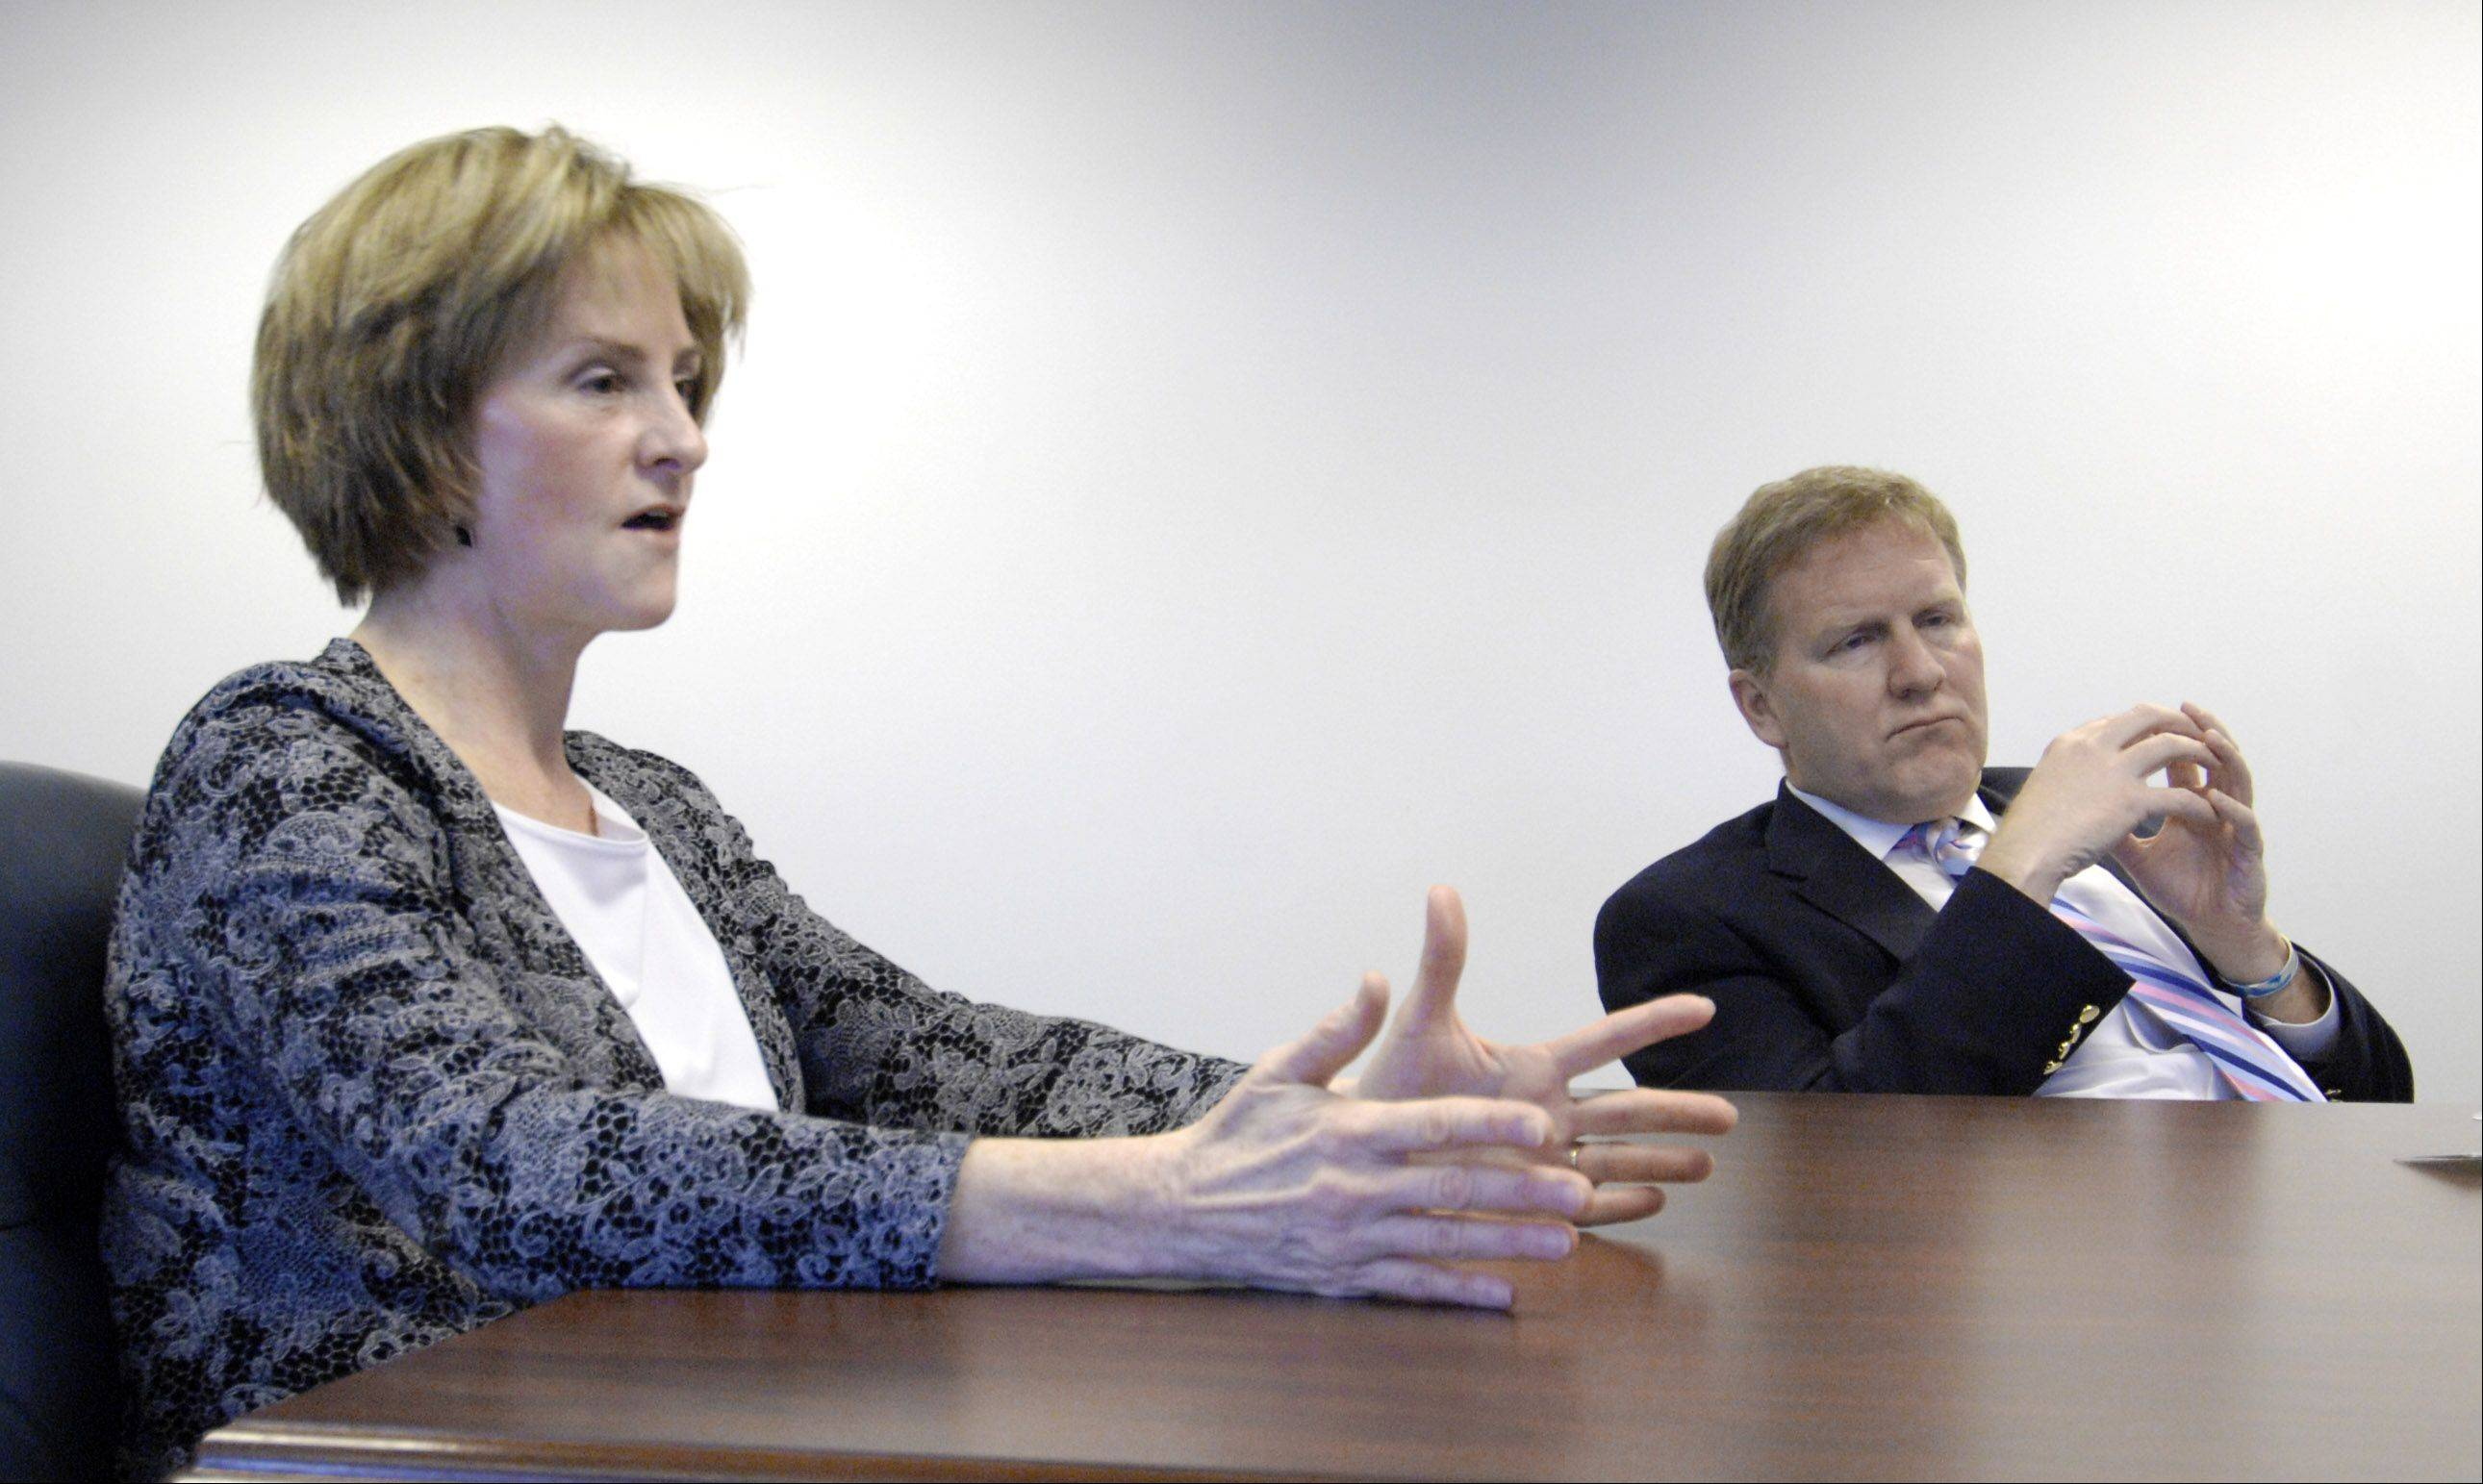 Illinois Senate Republican leader Christine Radogno and Illinois House Republican leader Tom Cross speak with the Daily Herald Editorial Board.